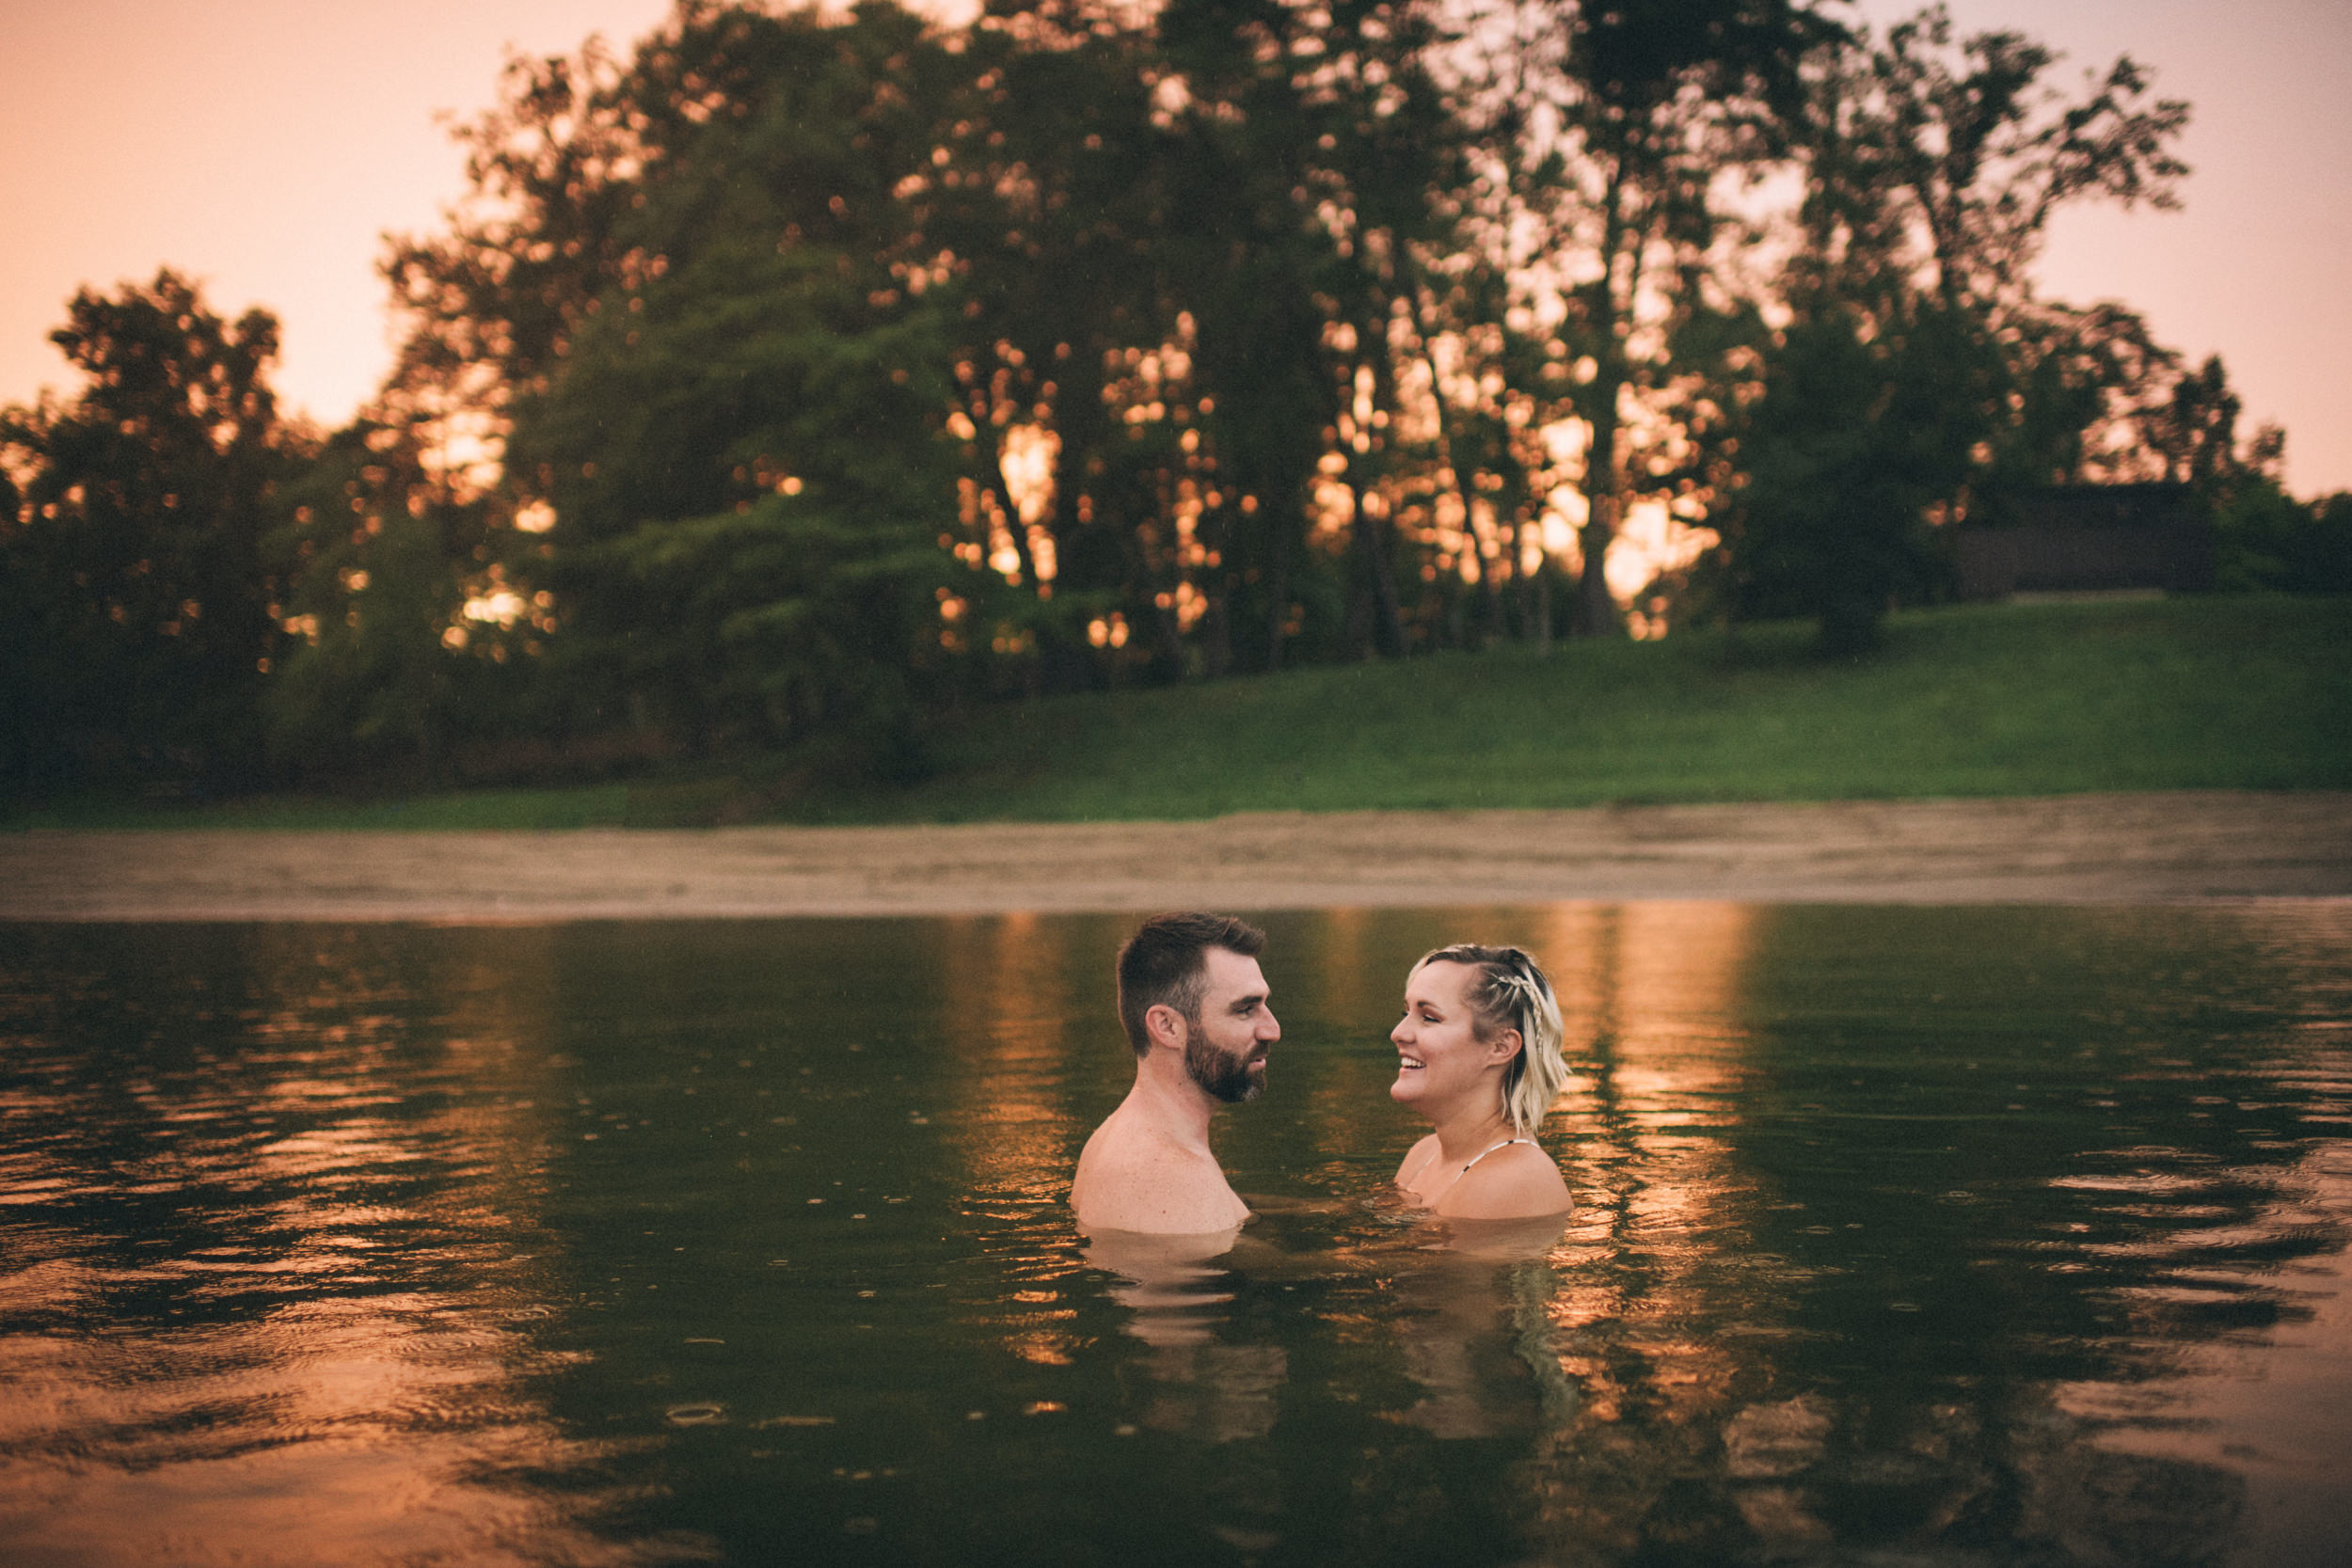 Sarah-Katherine-Davis-Photography-Louisville-Kentucky-Wedding-Elopement-Photographer-Just-Because-Session-Stormy-Blue-Hour-Swimming-In-Lake-Couple-Session-Abby-Schyler-94edit.jpg